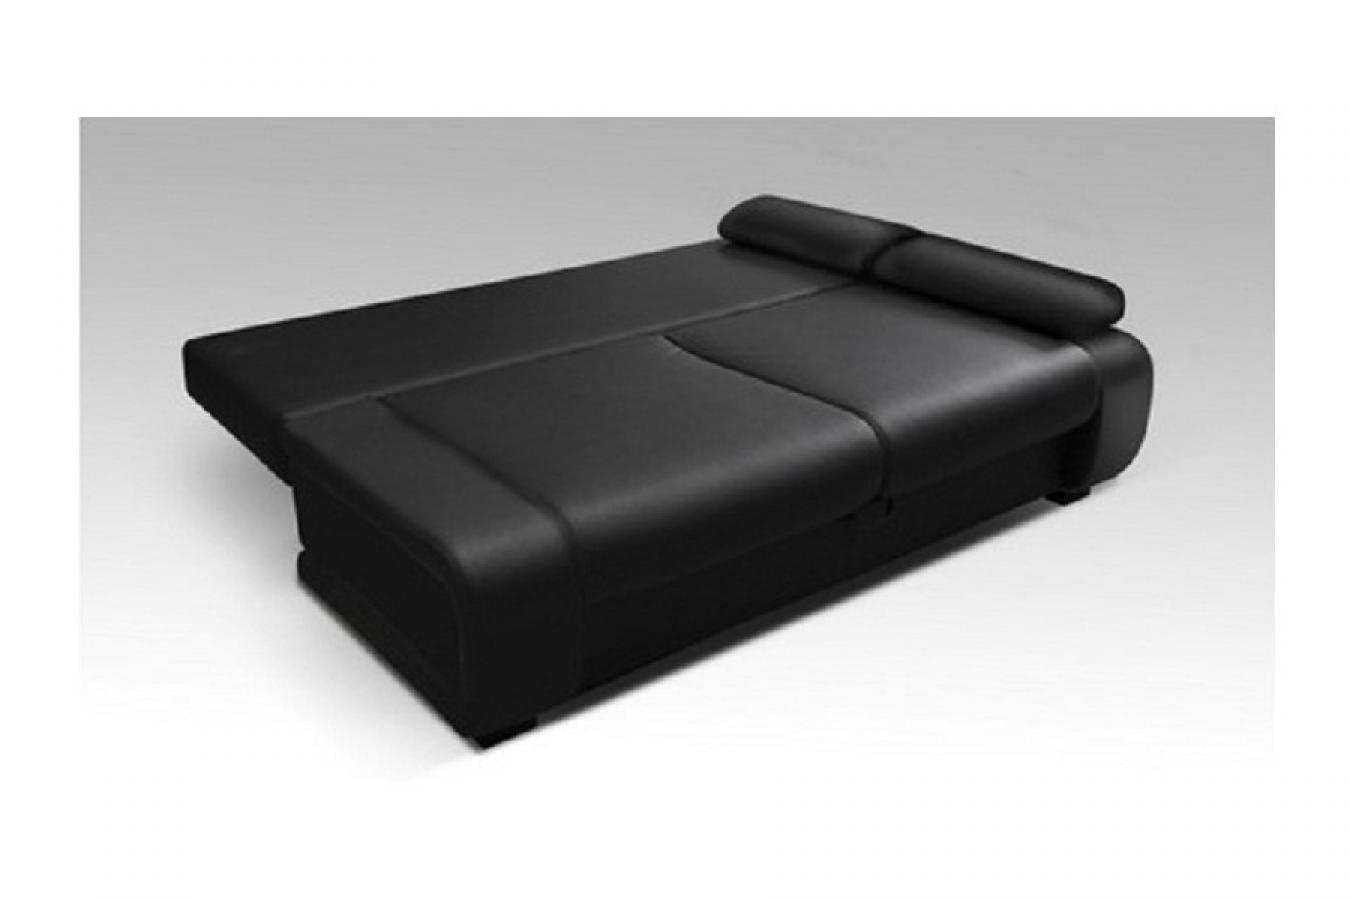 canap convertible milano maison du monde photos canap lit convertible couchage quotidien ikea. Black Bedroom Furniture Sets. Home Design Ideas